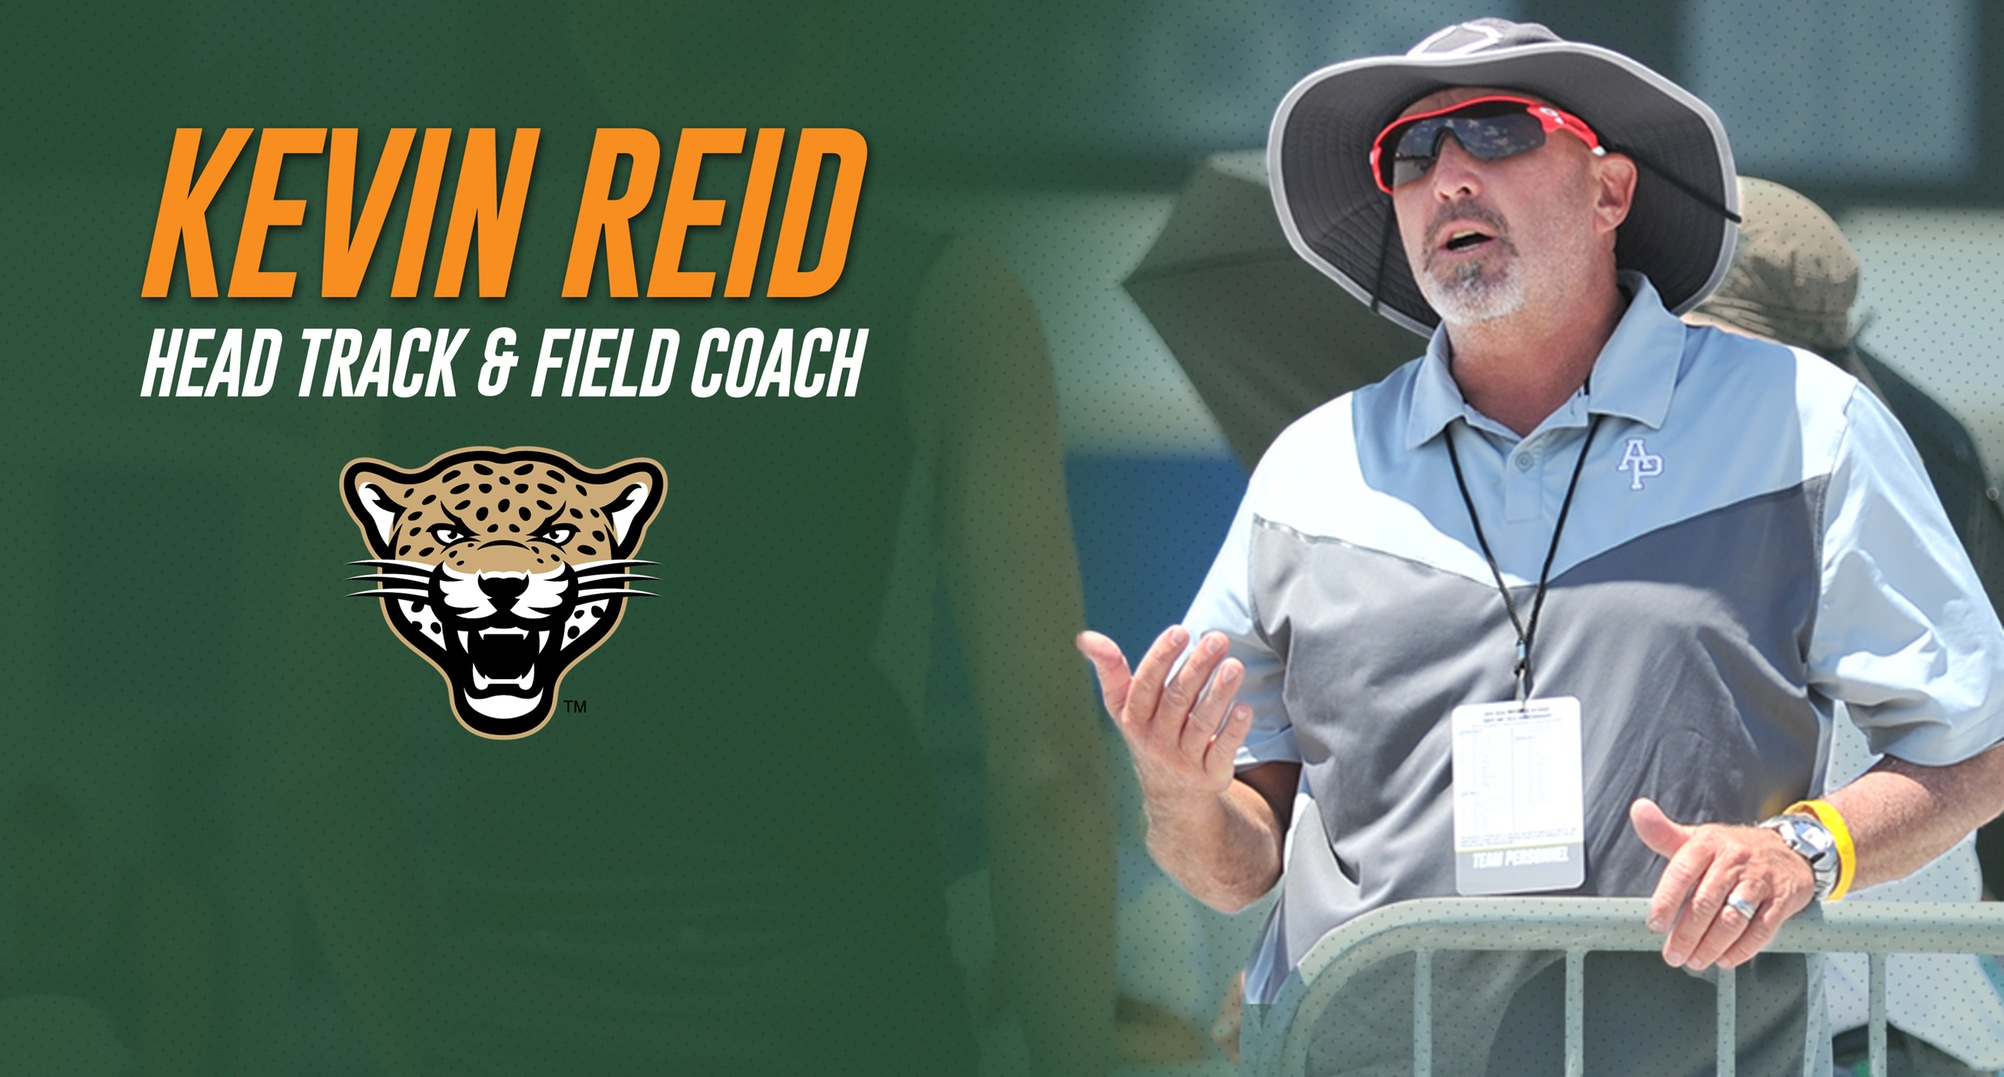 Kevin Reid named La Verne Track and Field head coach